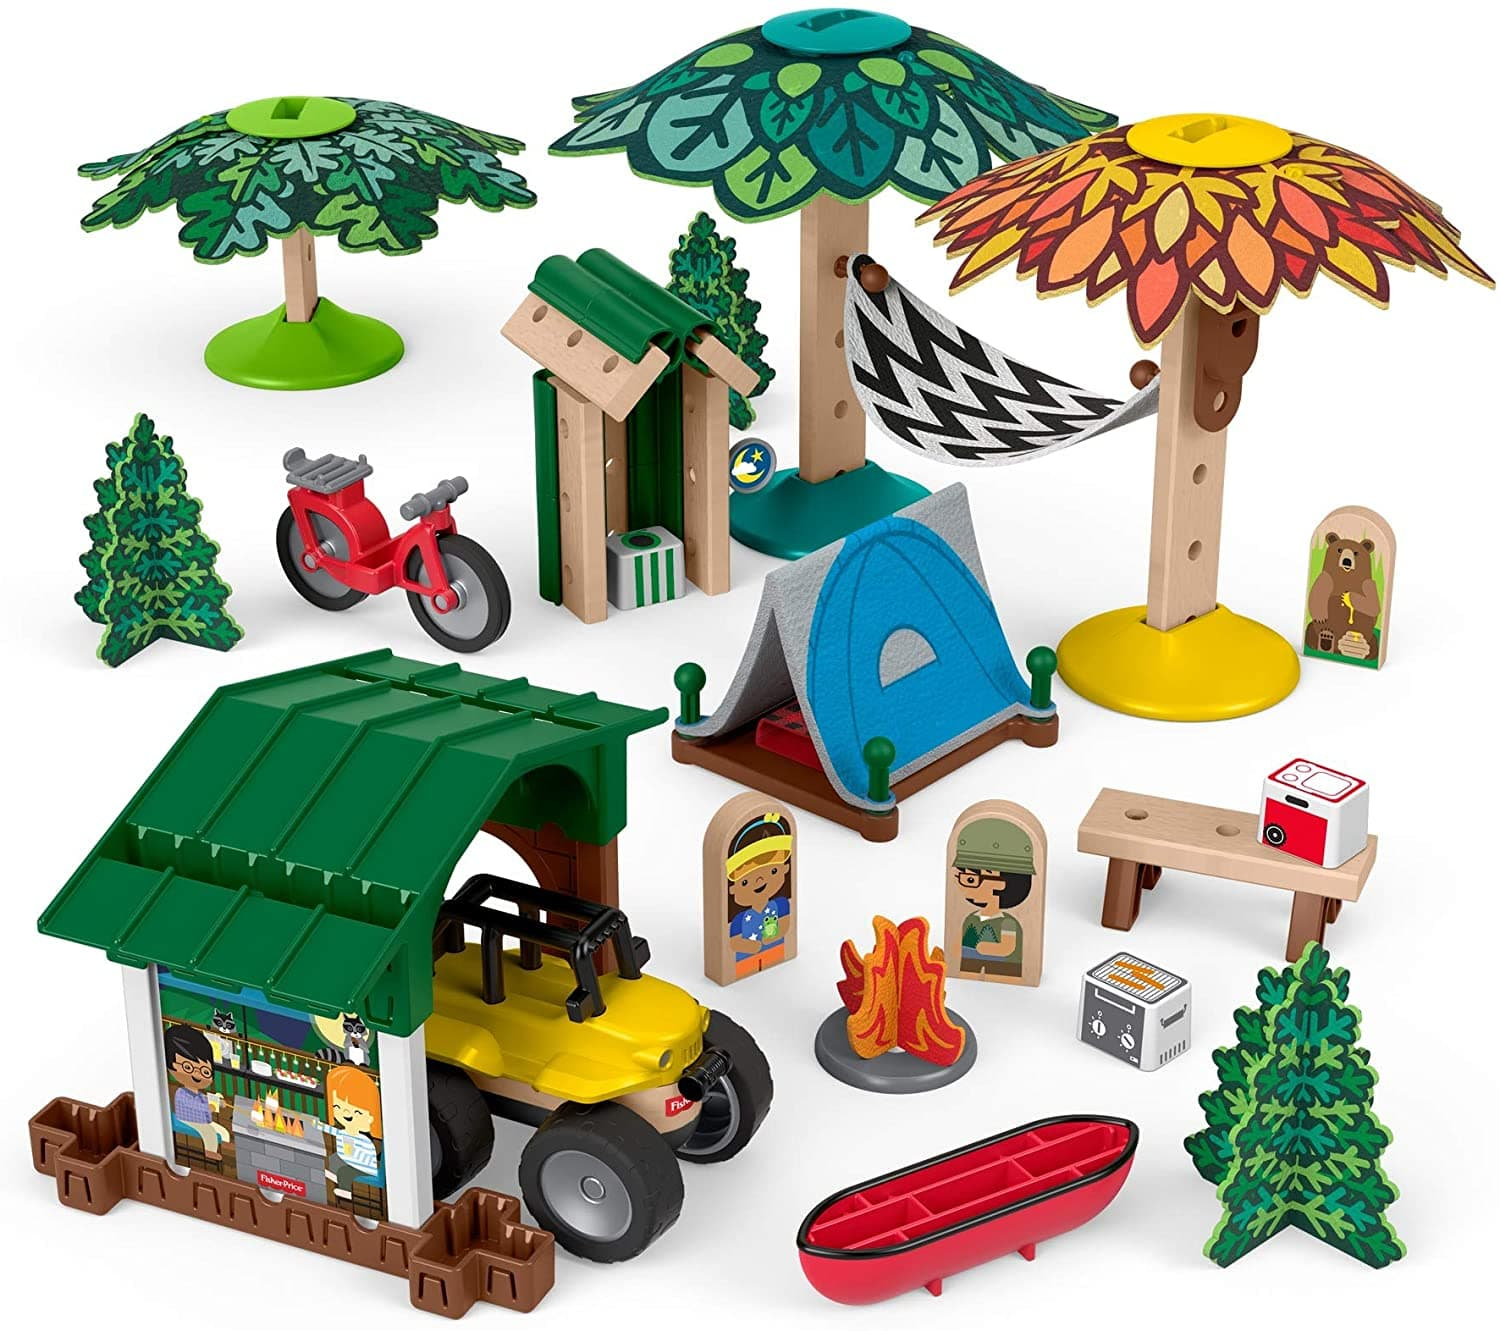 Fisher-Price Wonder Makers Design System Soft Slumber Campground, 60+ Pieces for $11.53 @ Amazon